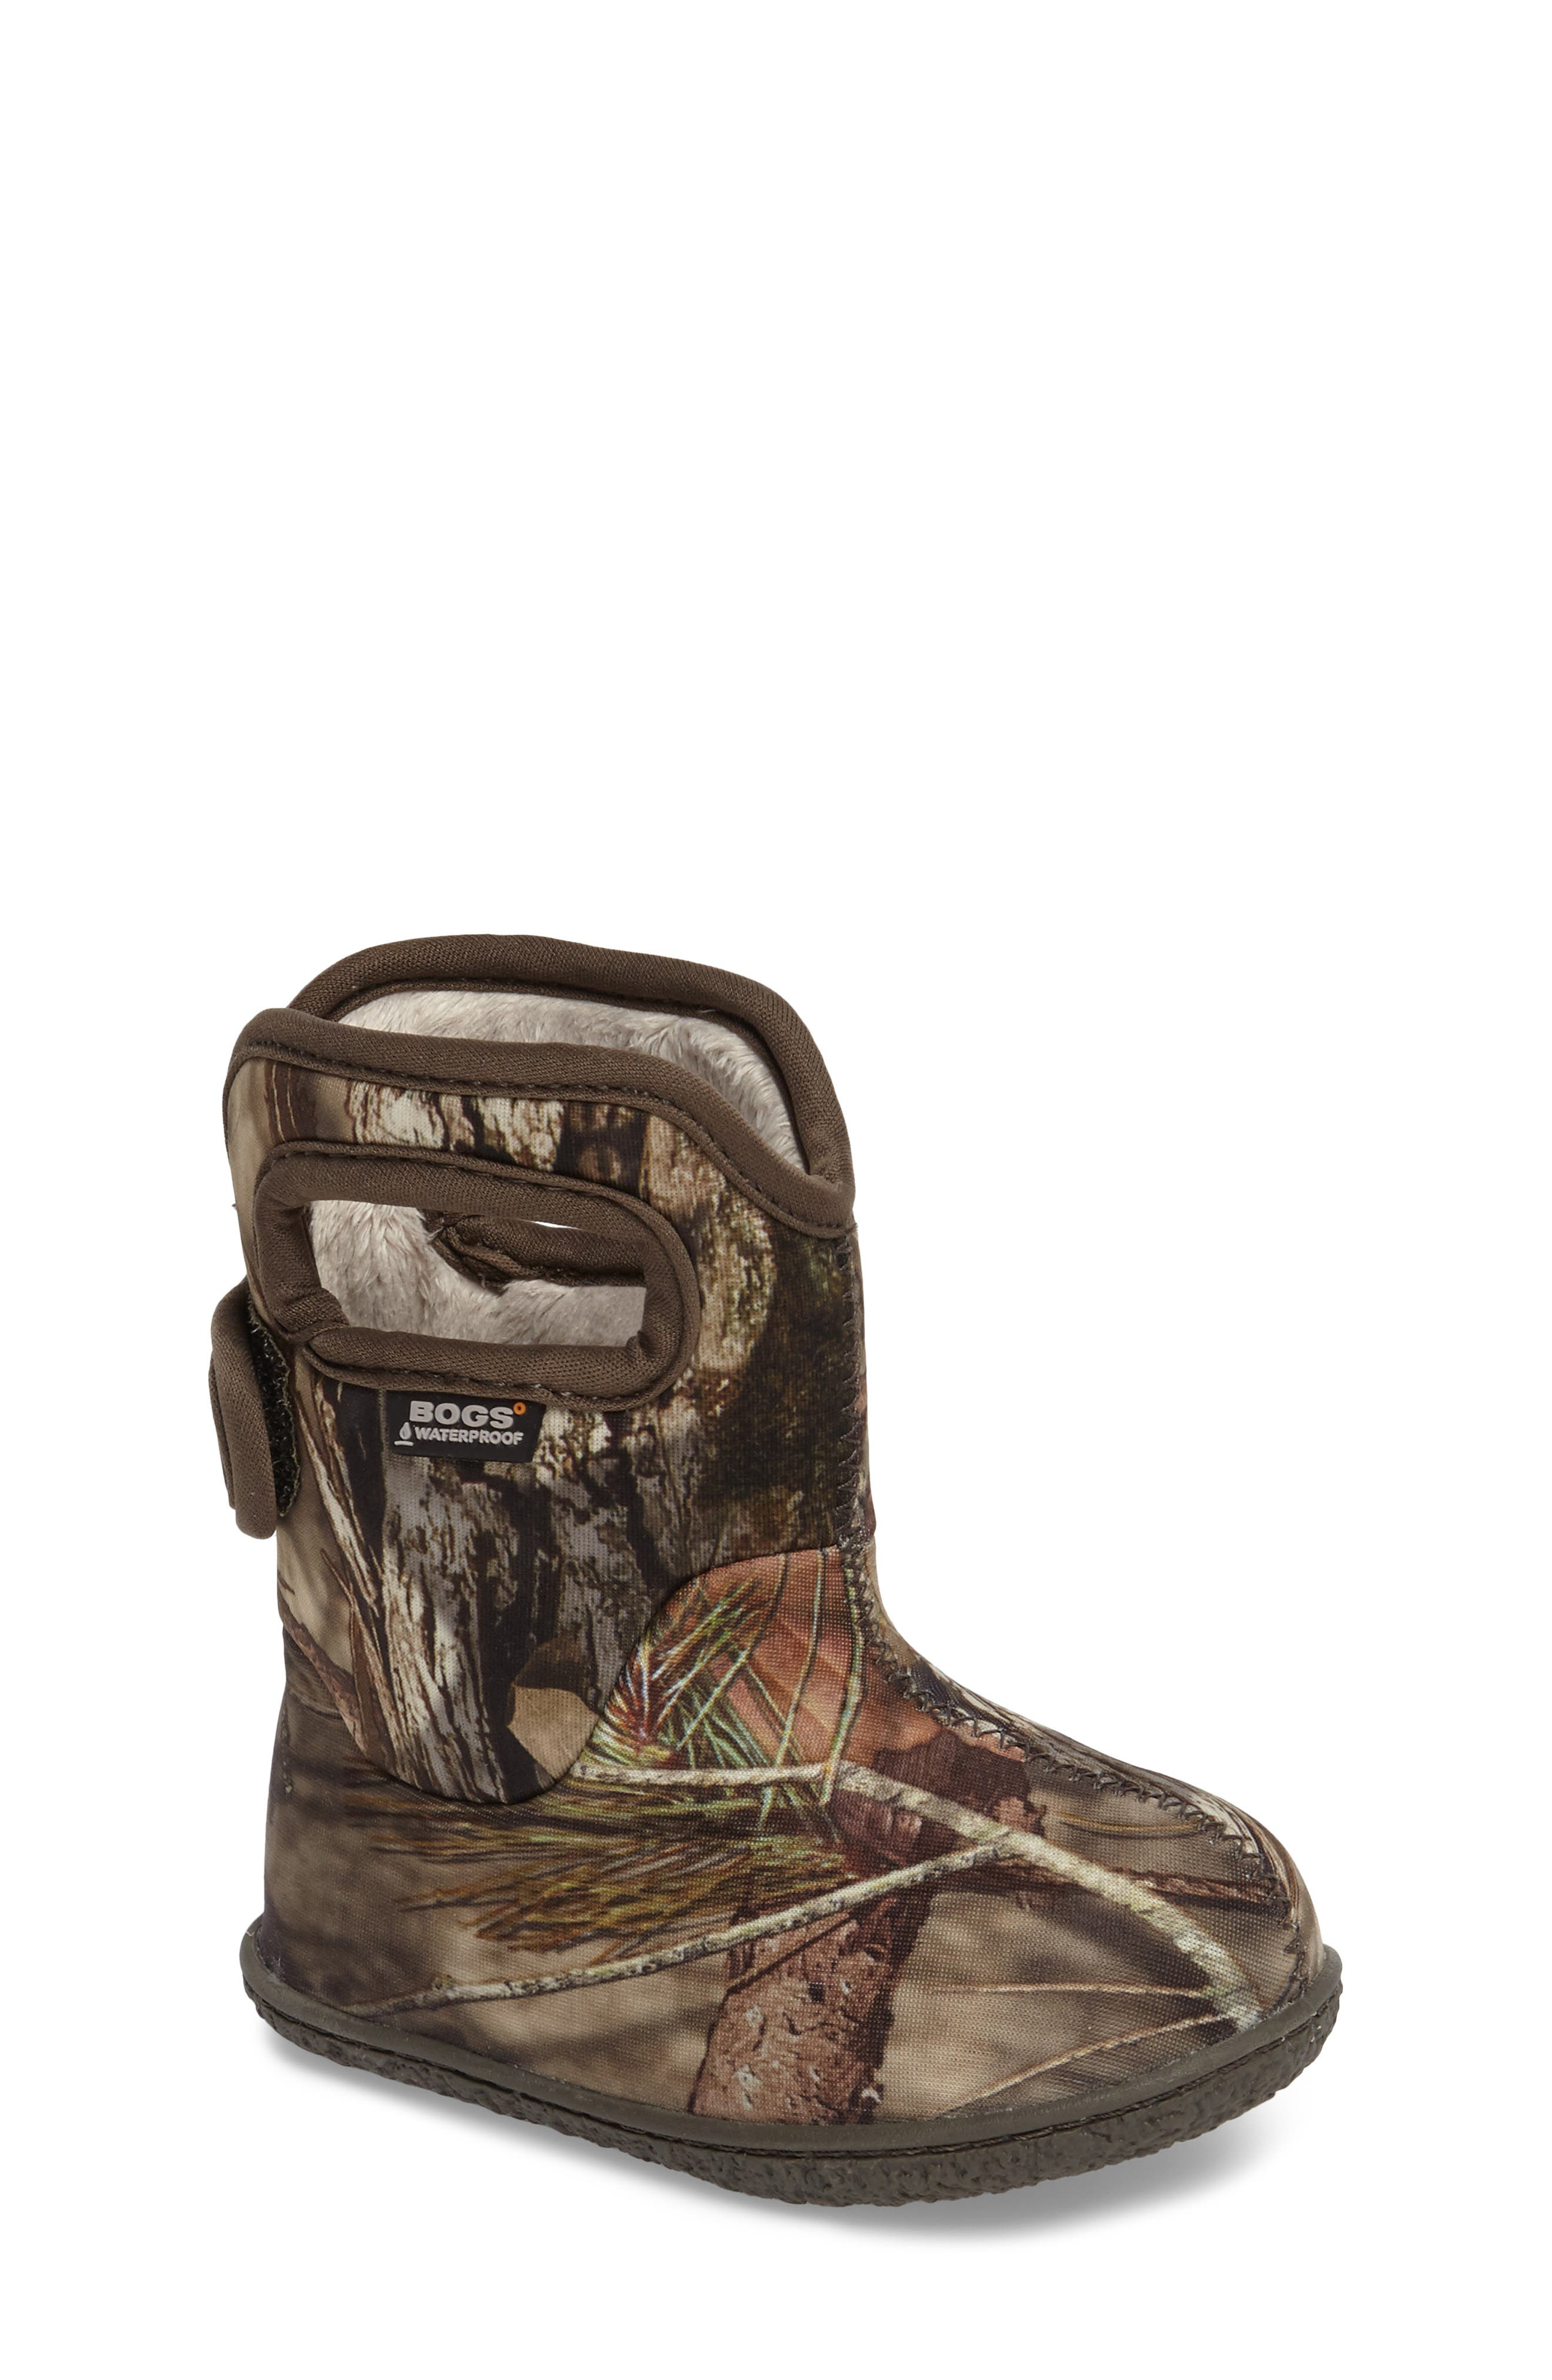 Bogs Baby Bogs Classic Camo Insulated Waterproof Boot (Baby, Walker & Toddler)